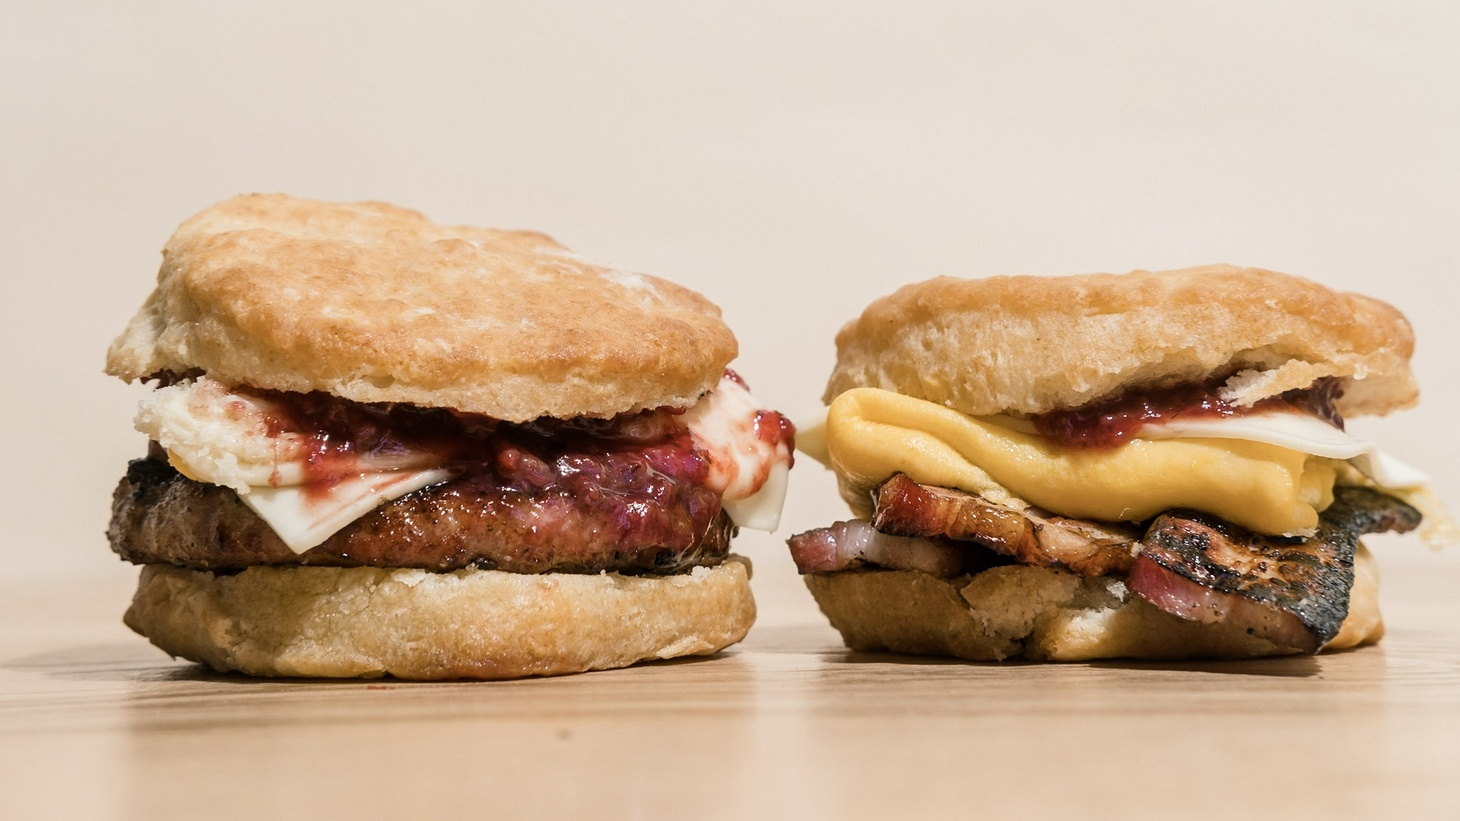 Ever since All Day Baby adopted a takeout window, their biscuit sandwiches have grown more popular.